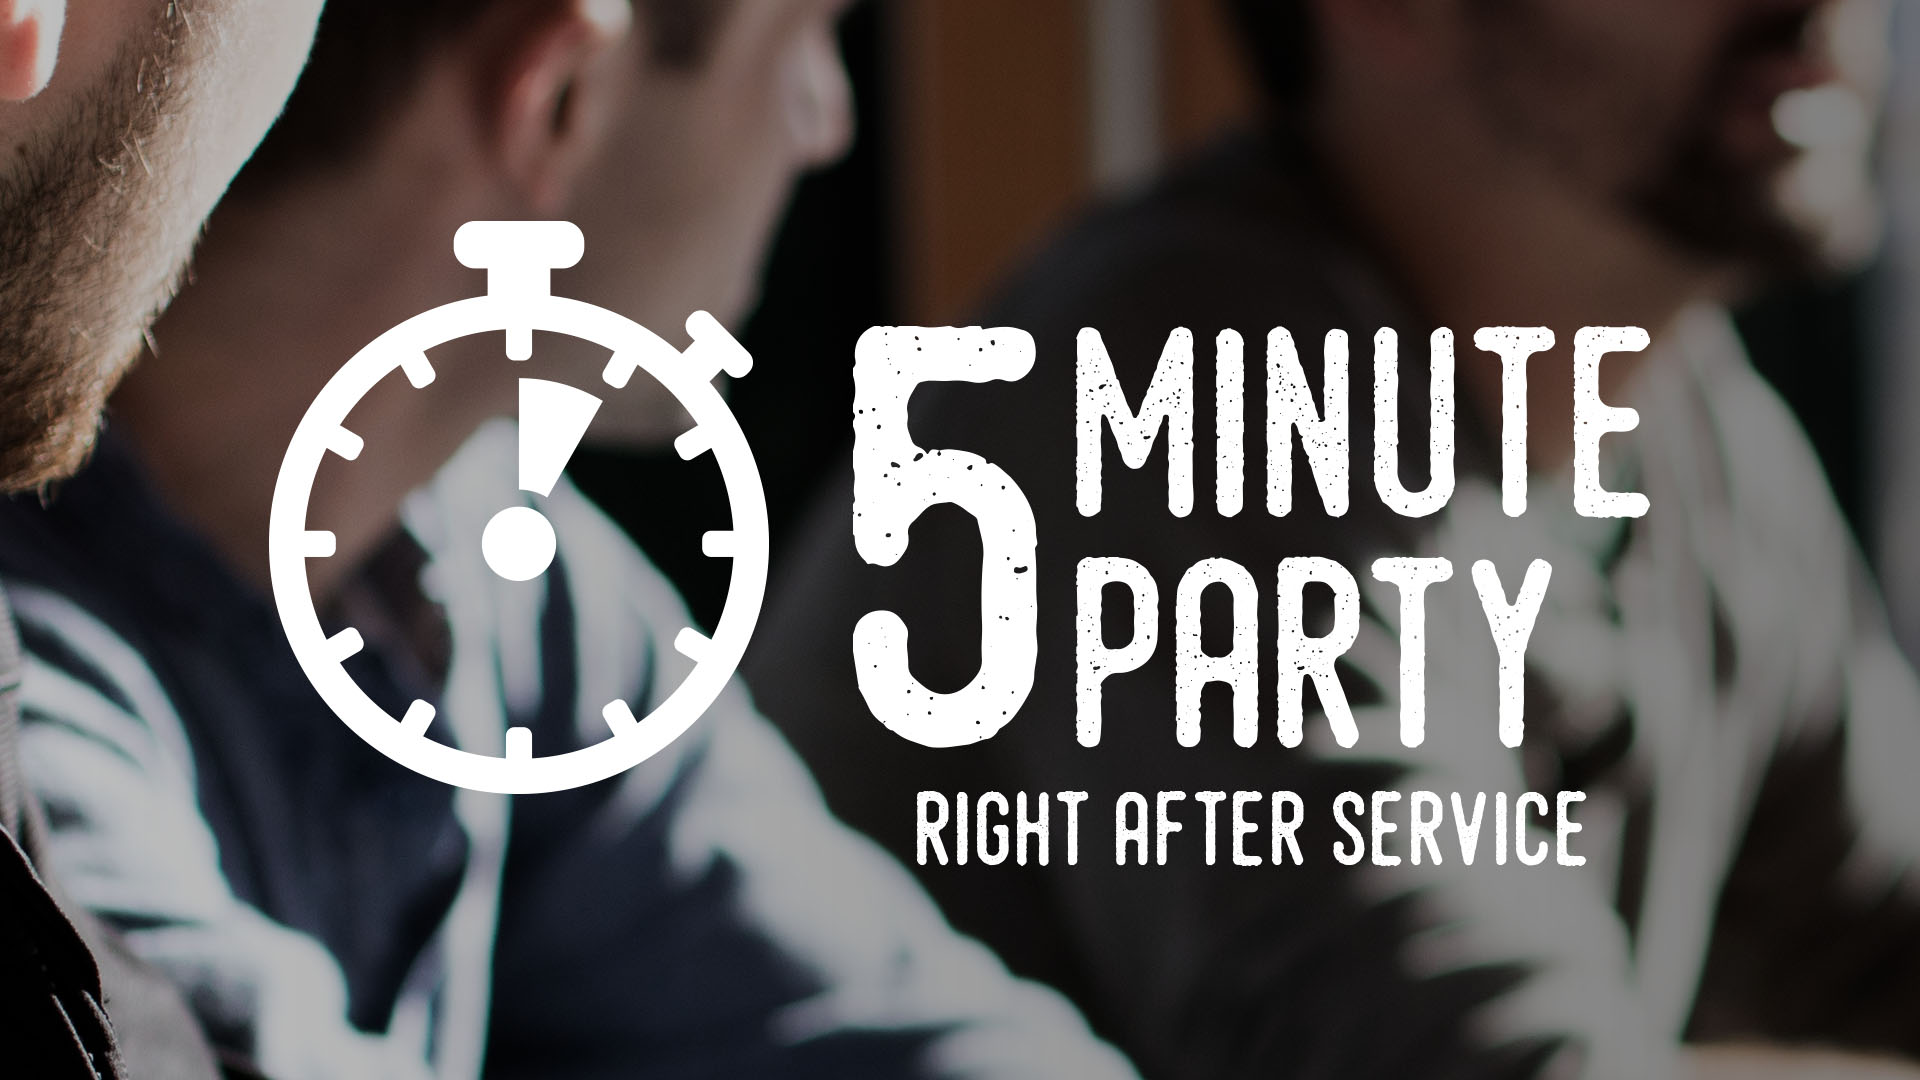 5MinuteParty_Announcements-1920 x 1080-v1.jpg